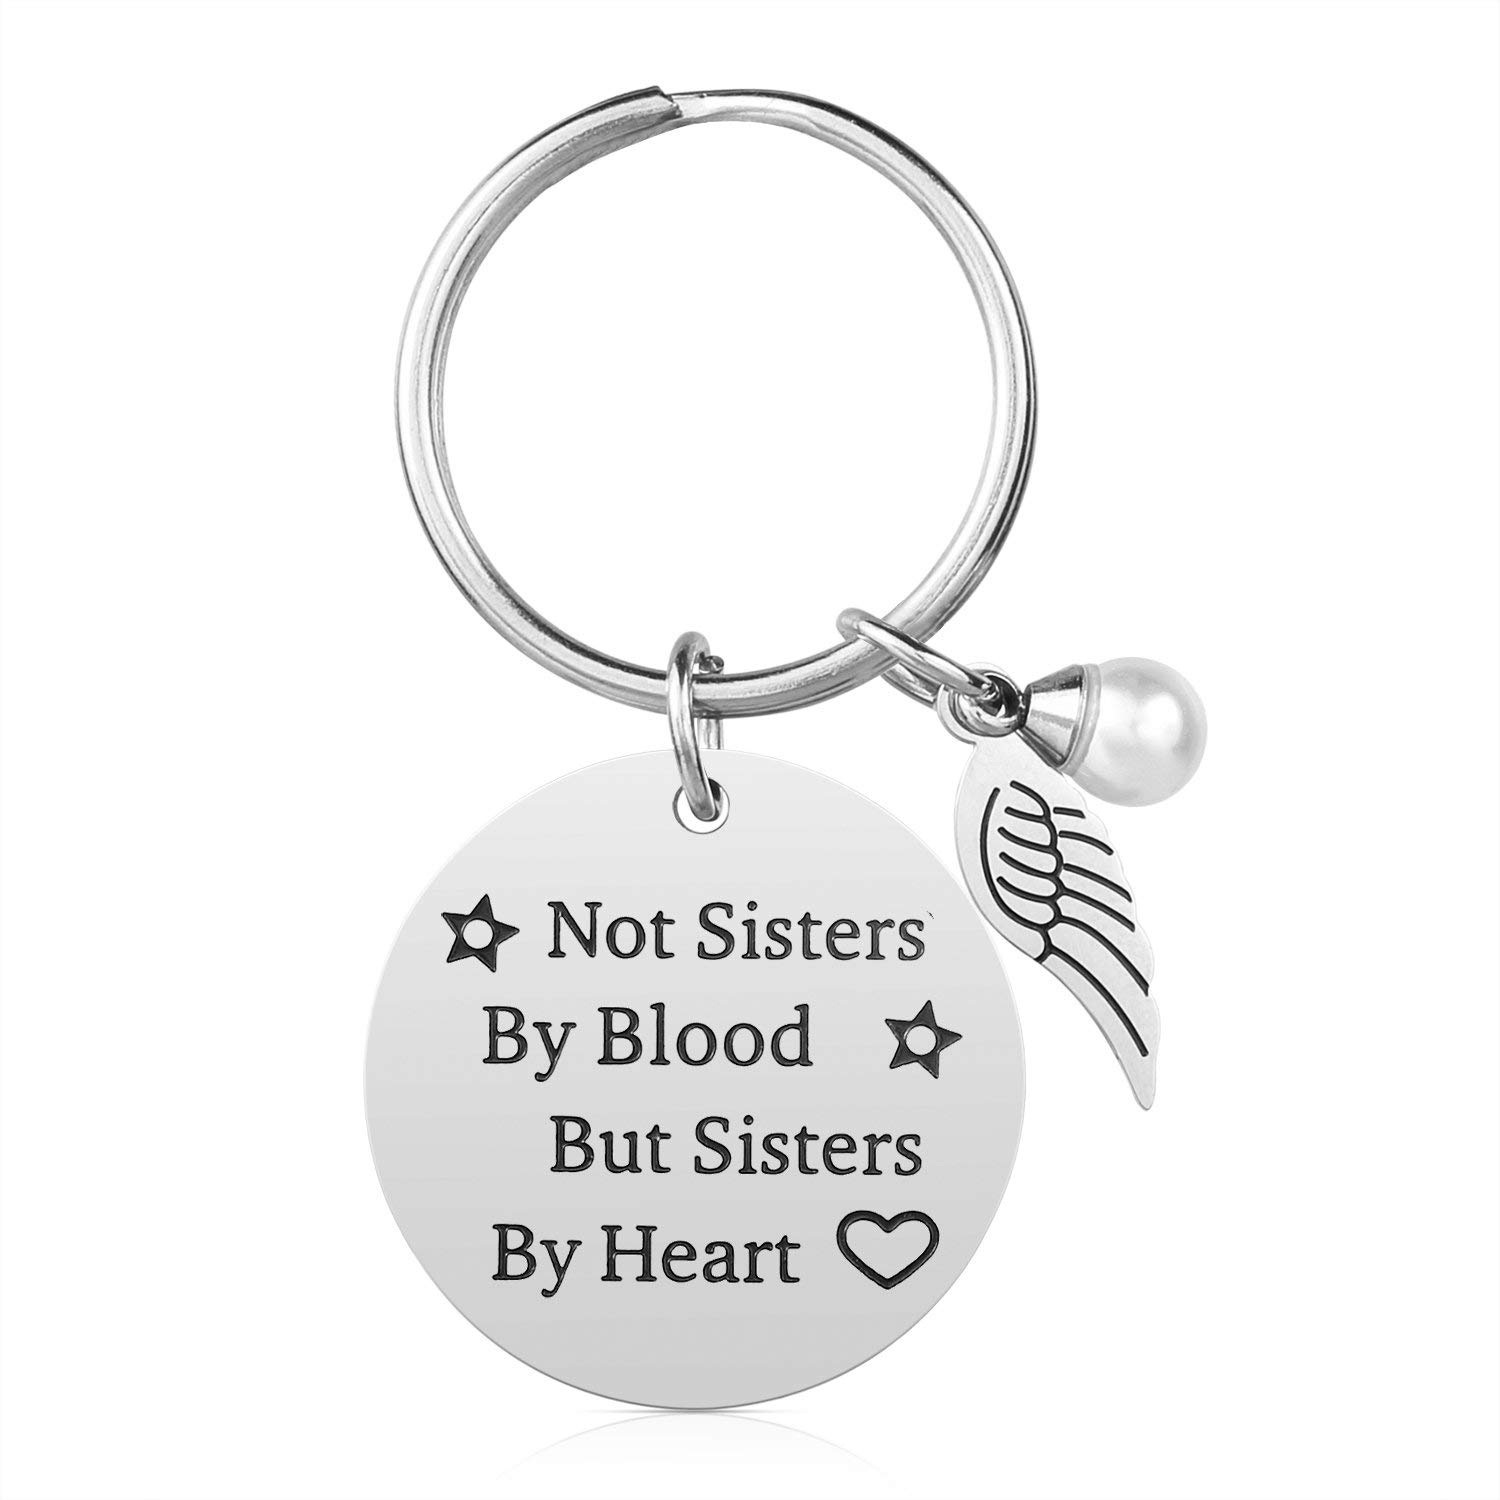 MOMIKA Women Friendship Gifts Not Sisters By Blood But Sister Heart Perfect Gift Ideas For Teens Girls Birthday